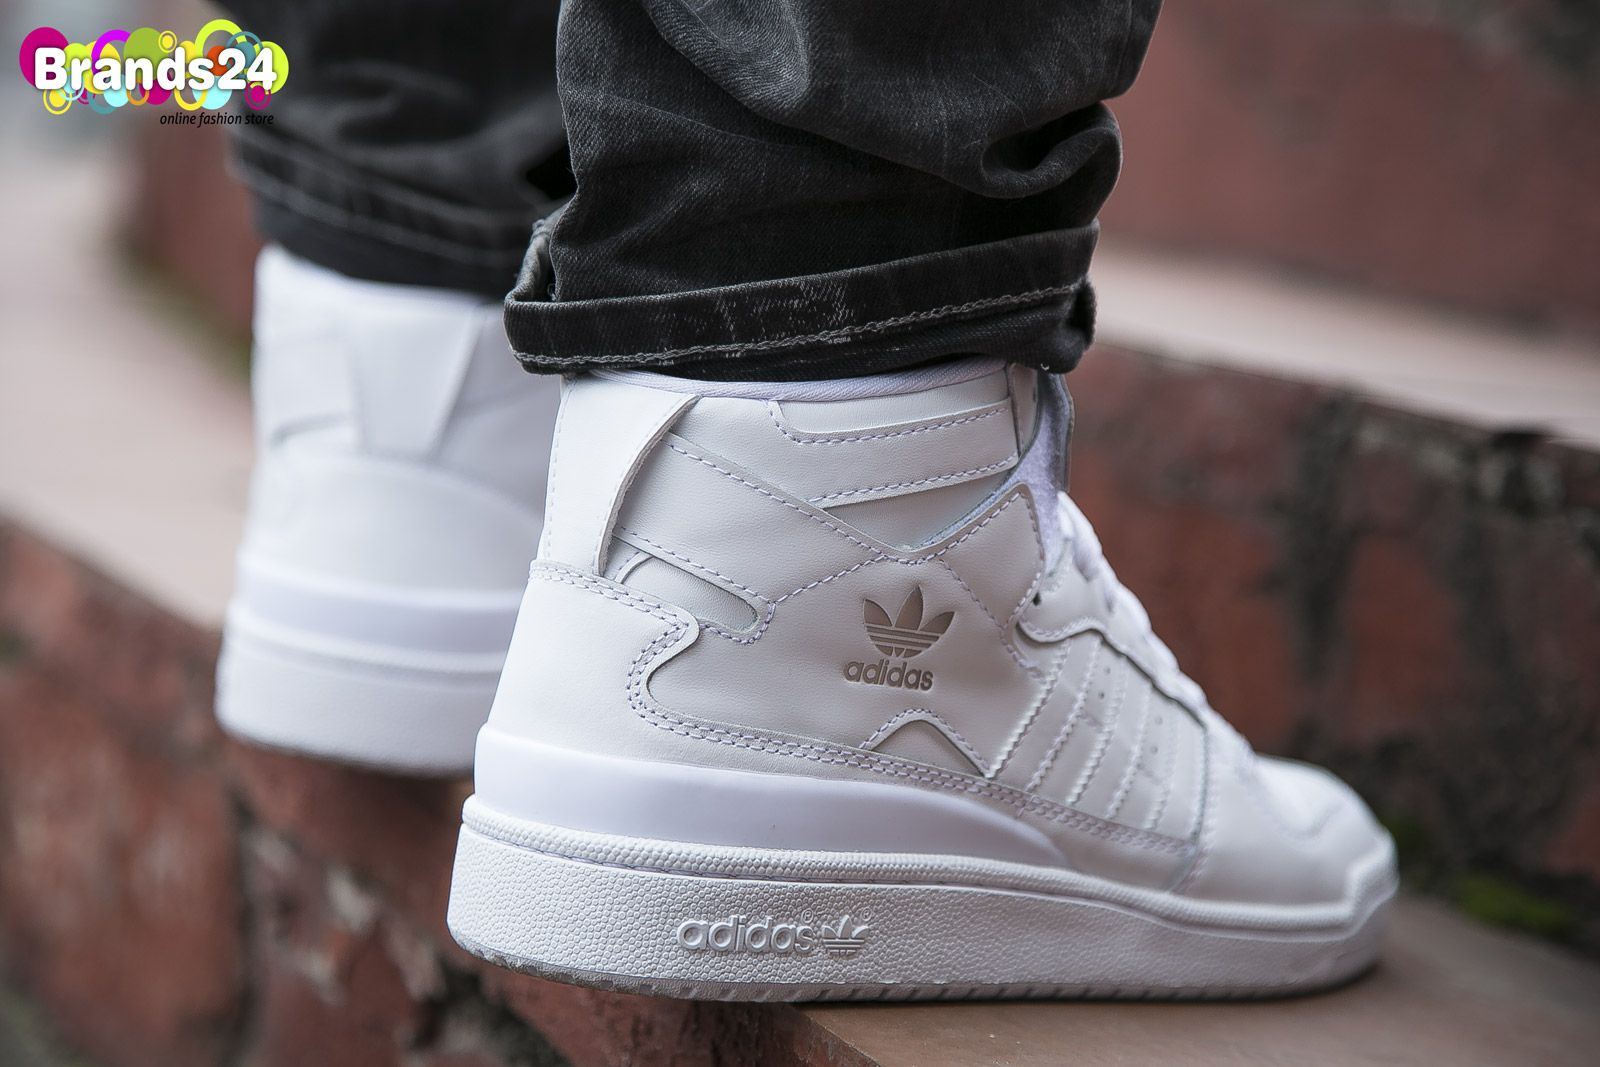 Adidas Originals FORUM MID Triple White